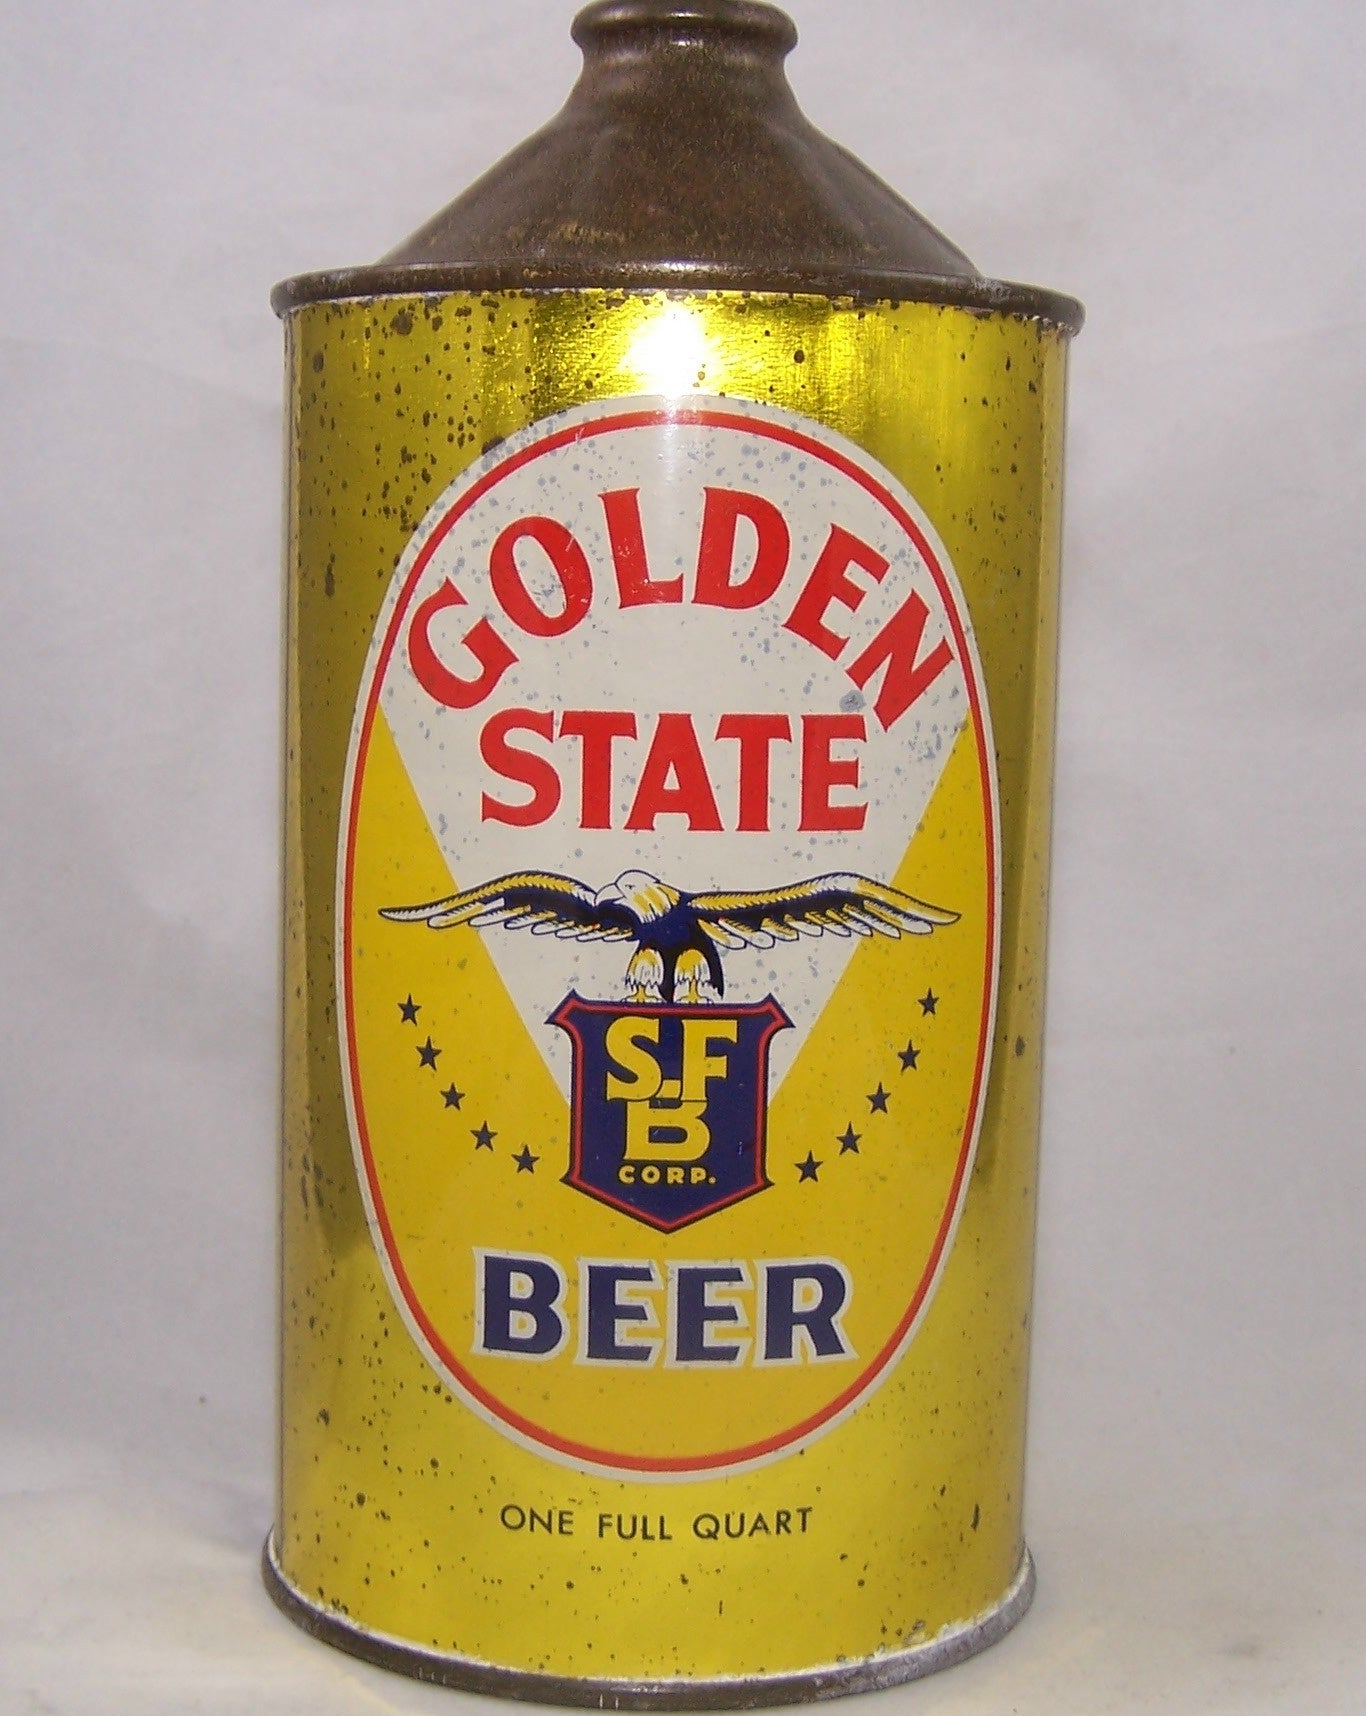 Golden State Beer, USBC 211-07, Grade 1-/2+ Sold on 11/22/16